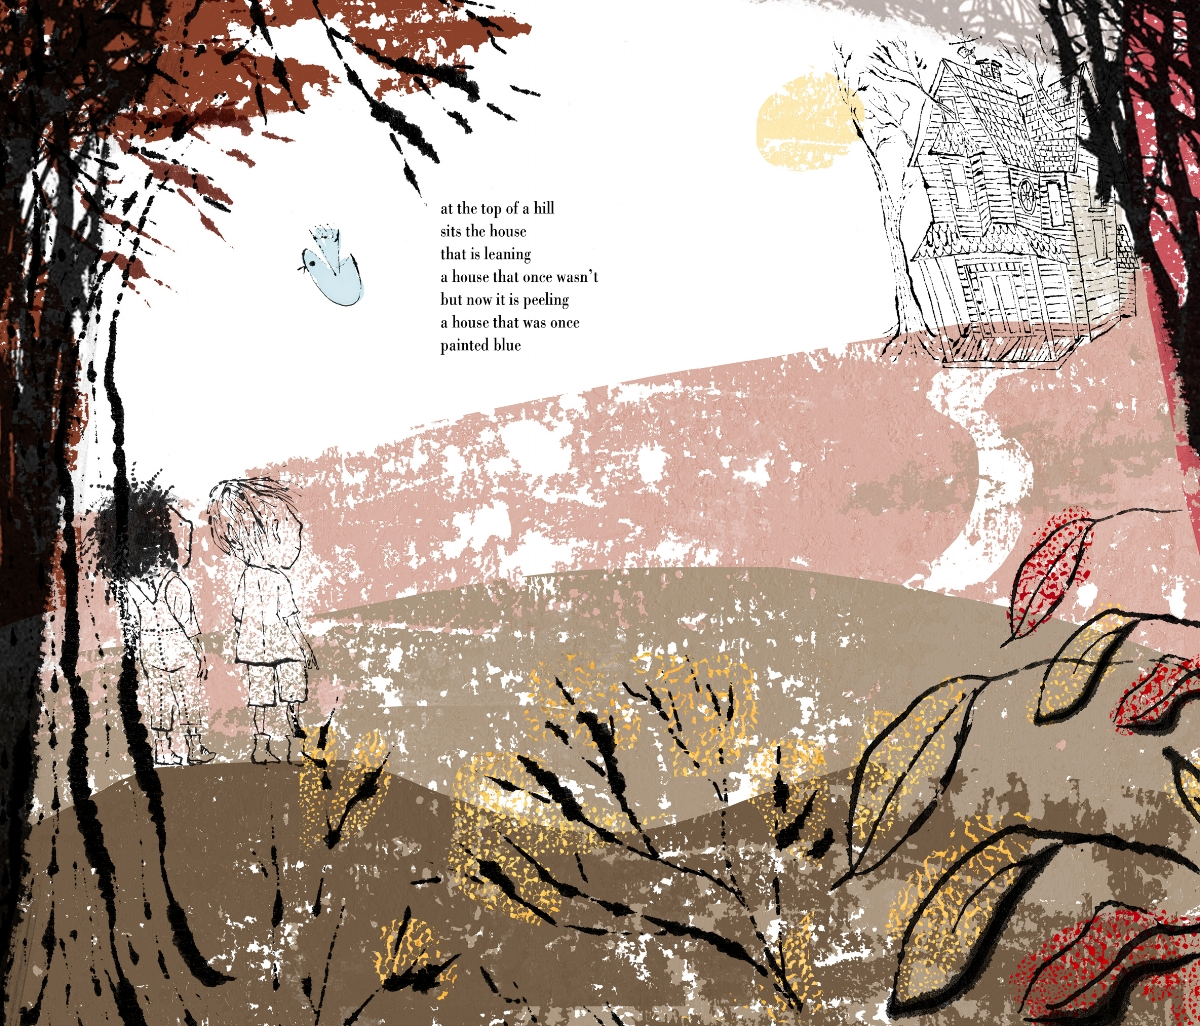 Interior page from book dummy of   A House That Once Was   ,  by Julie Fogliano, illustration by Lane Smith